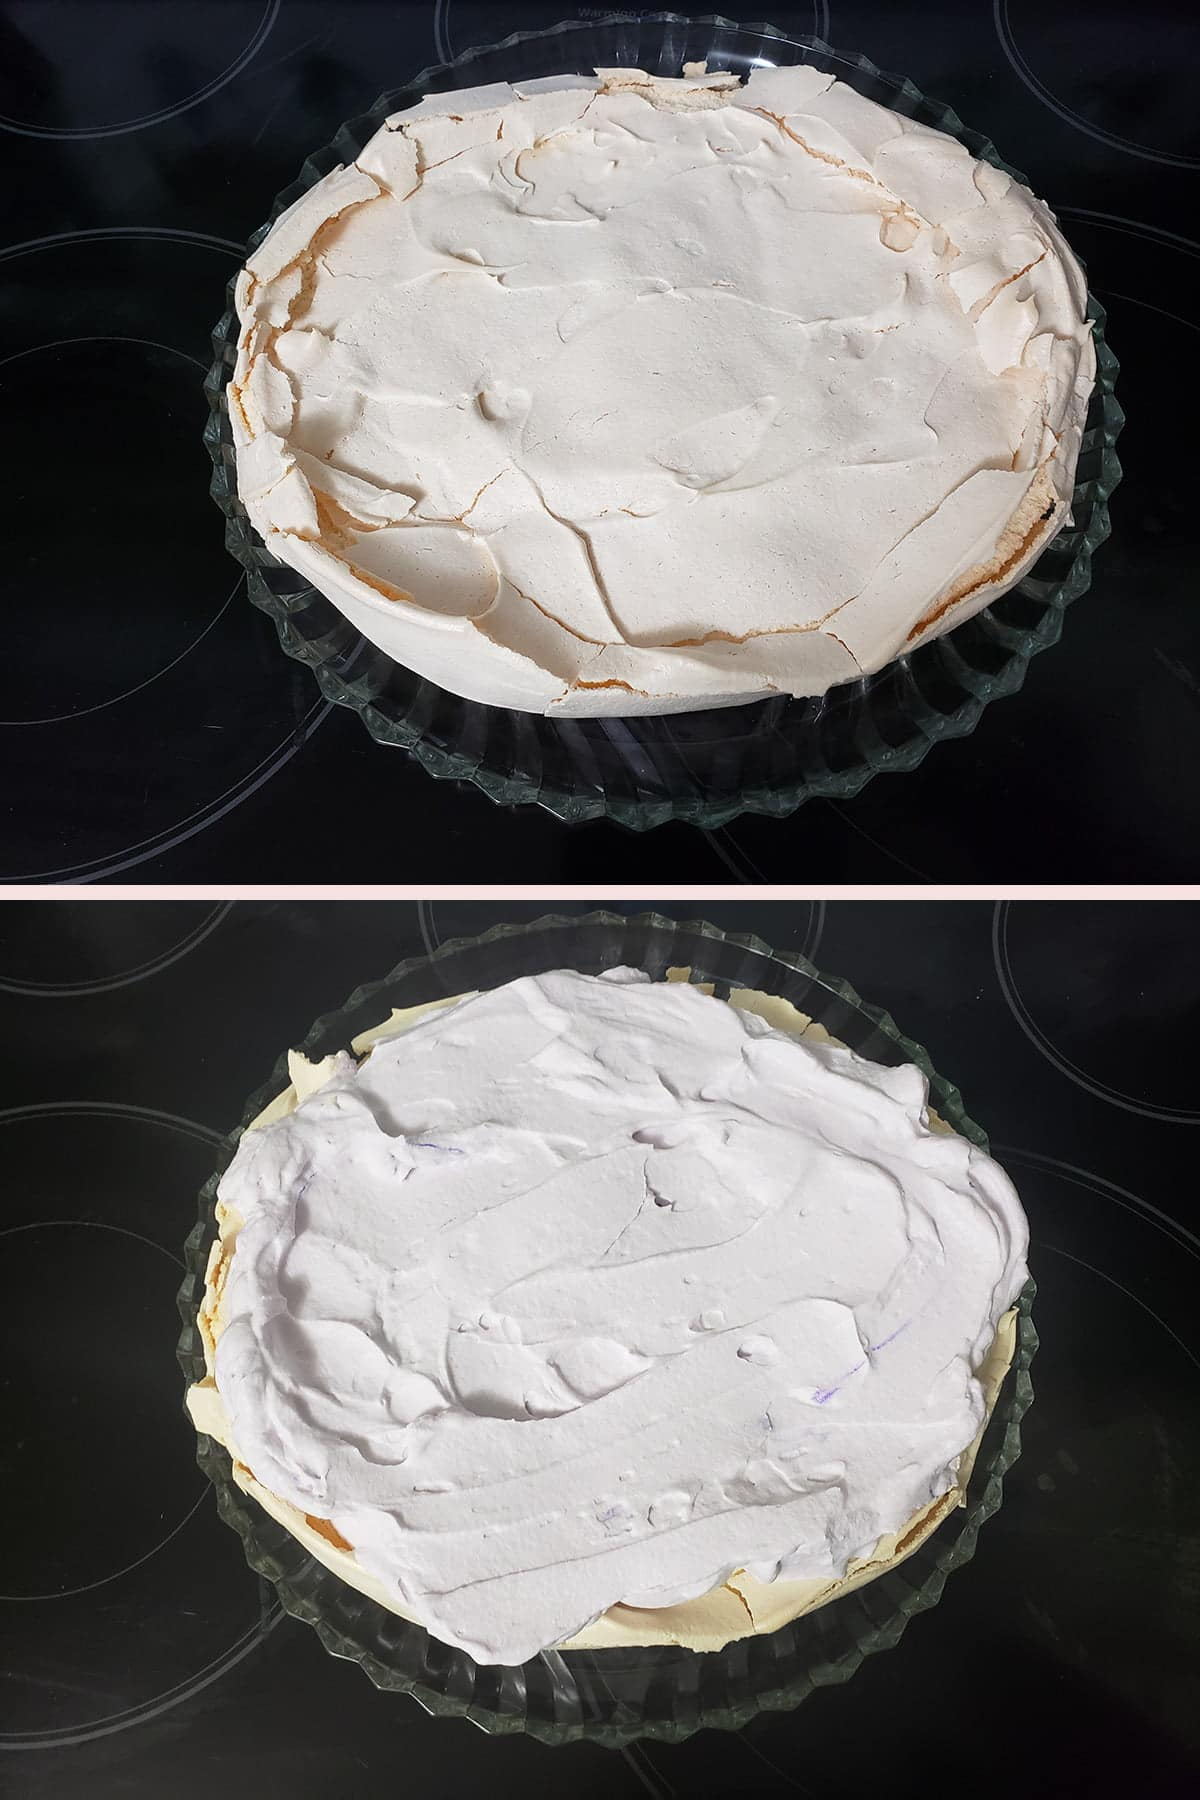 A two part compilation image showing a baked pavlova, and the same pavlova topped with very pale purple whipped cream.